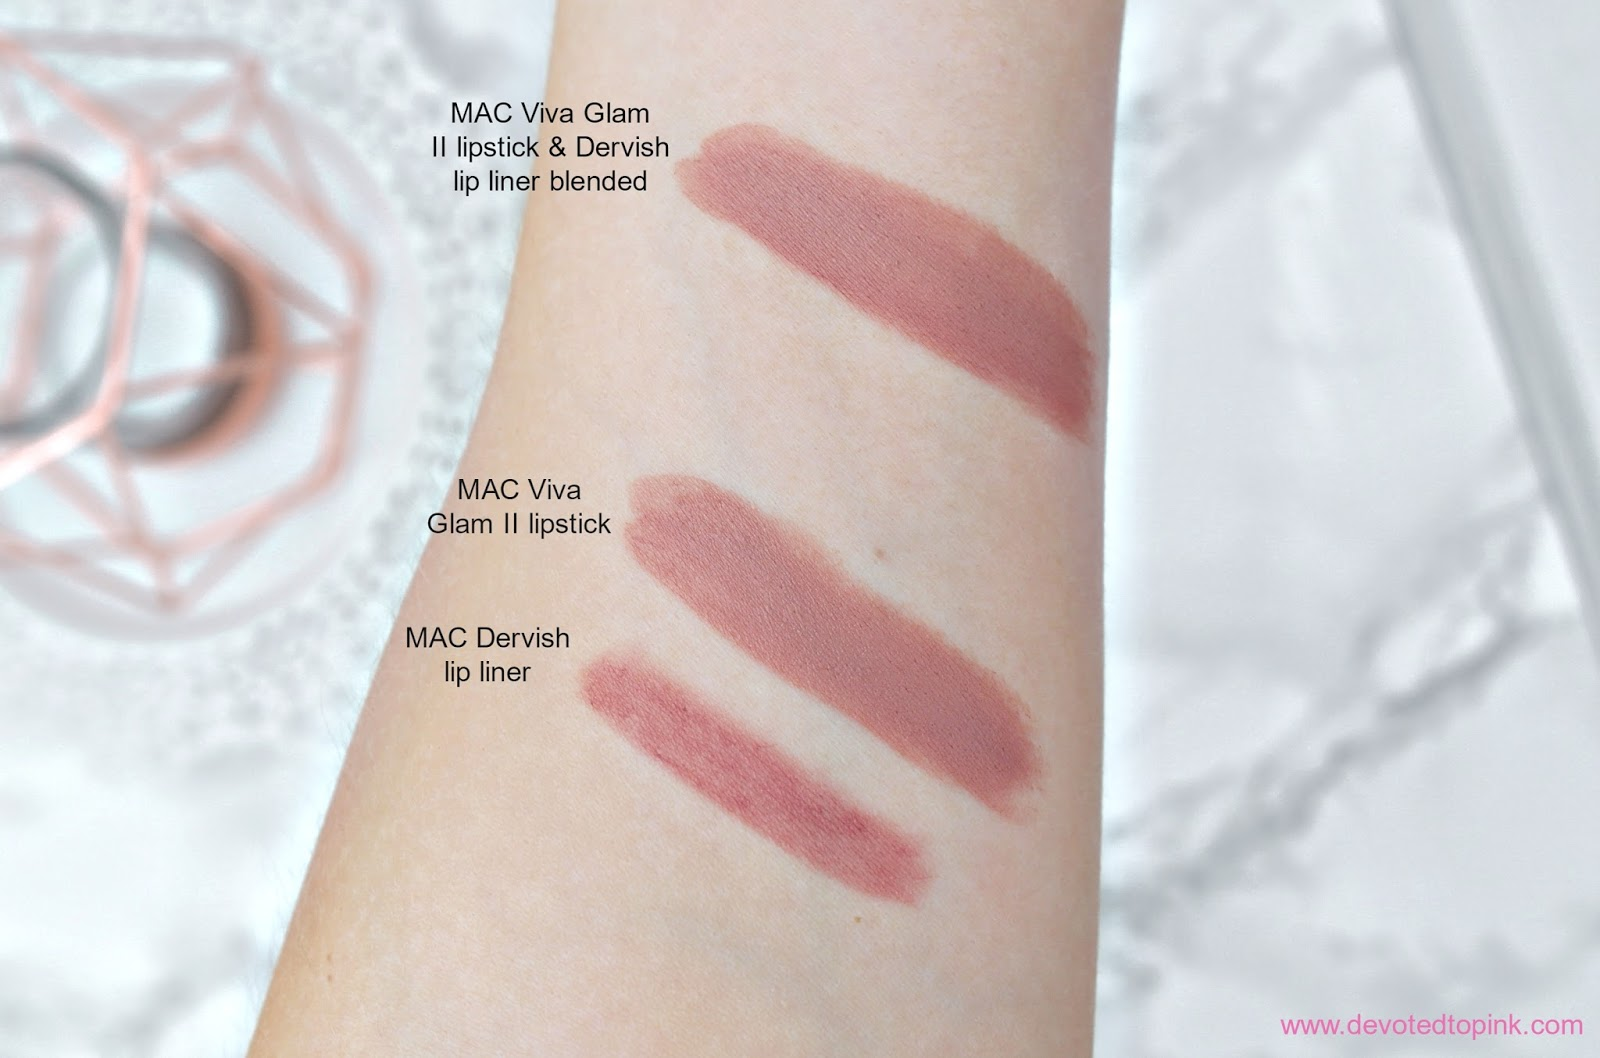 MAC Viva Glam II lipstick, MAC Dervish Lip Liner, swatches